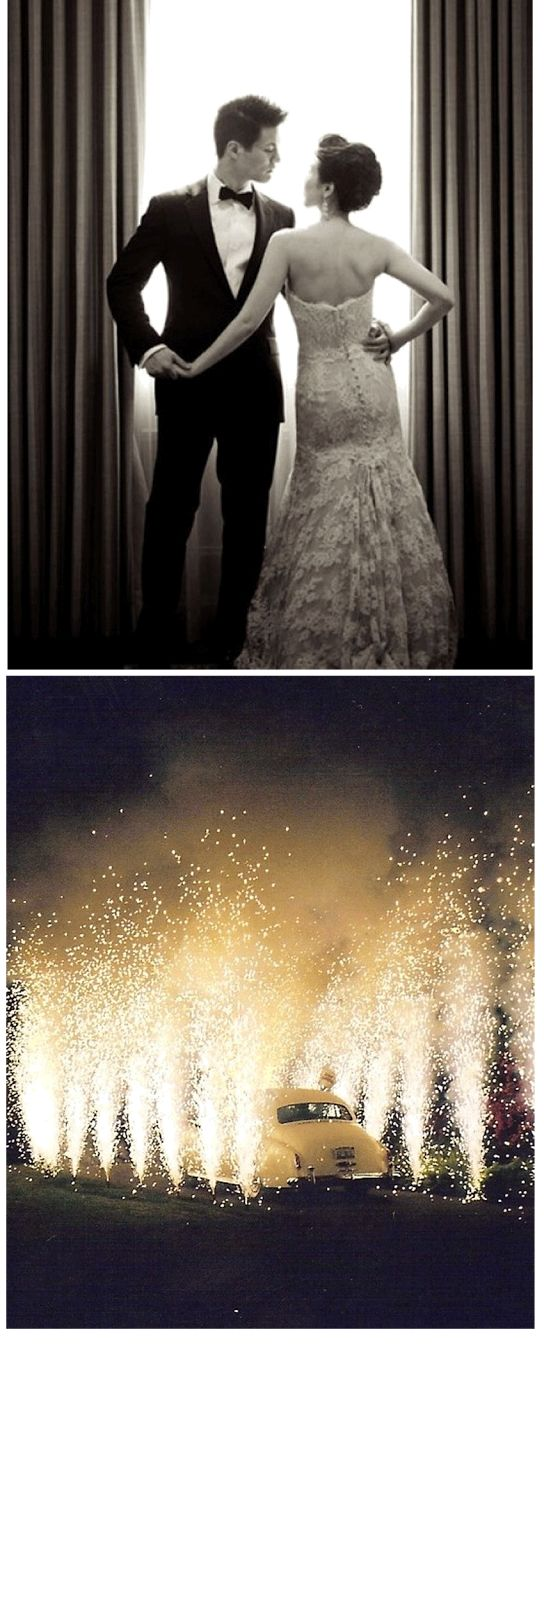 - Bodas Colorín Colorado - Great Gatsby Wedding - Boda Gran Gatsby I would seriously love to have a Gatsby wedding. But it's too fancy for everyone else!